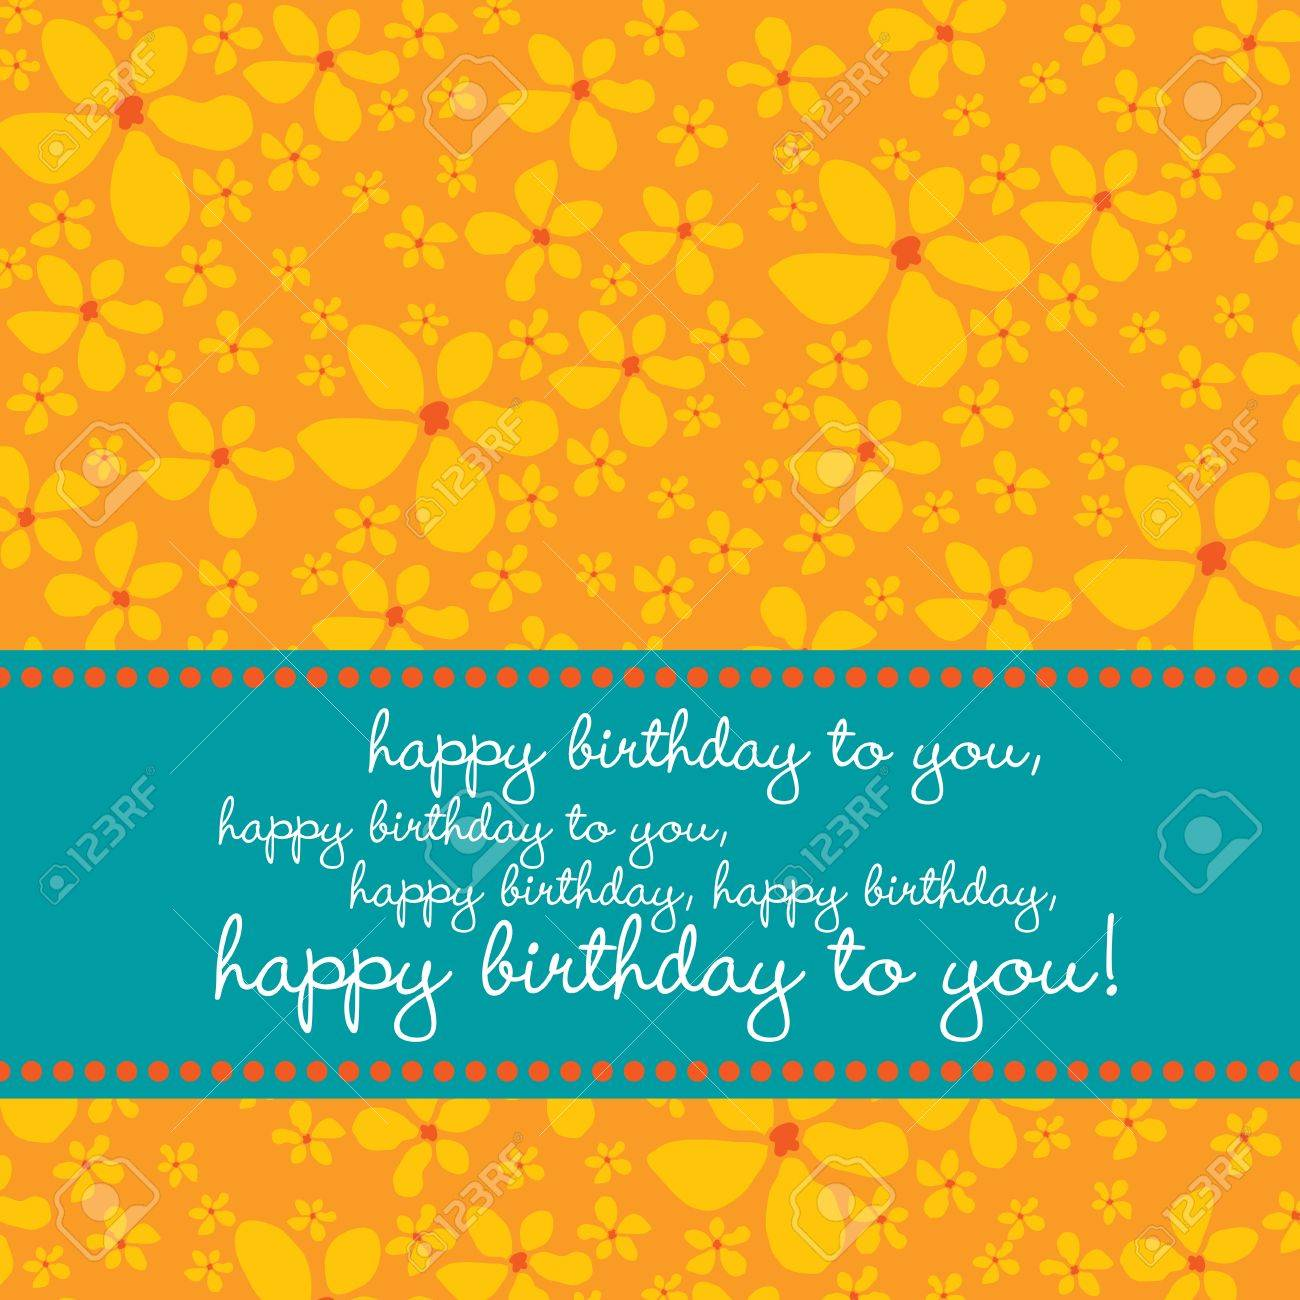 Bright colored birthday greetingcard with retro flower pattern in red, orange, blue, white. Stock Vector - 3466208